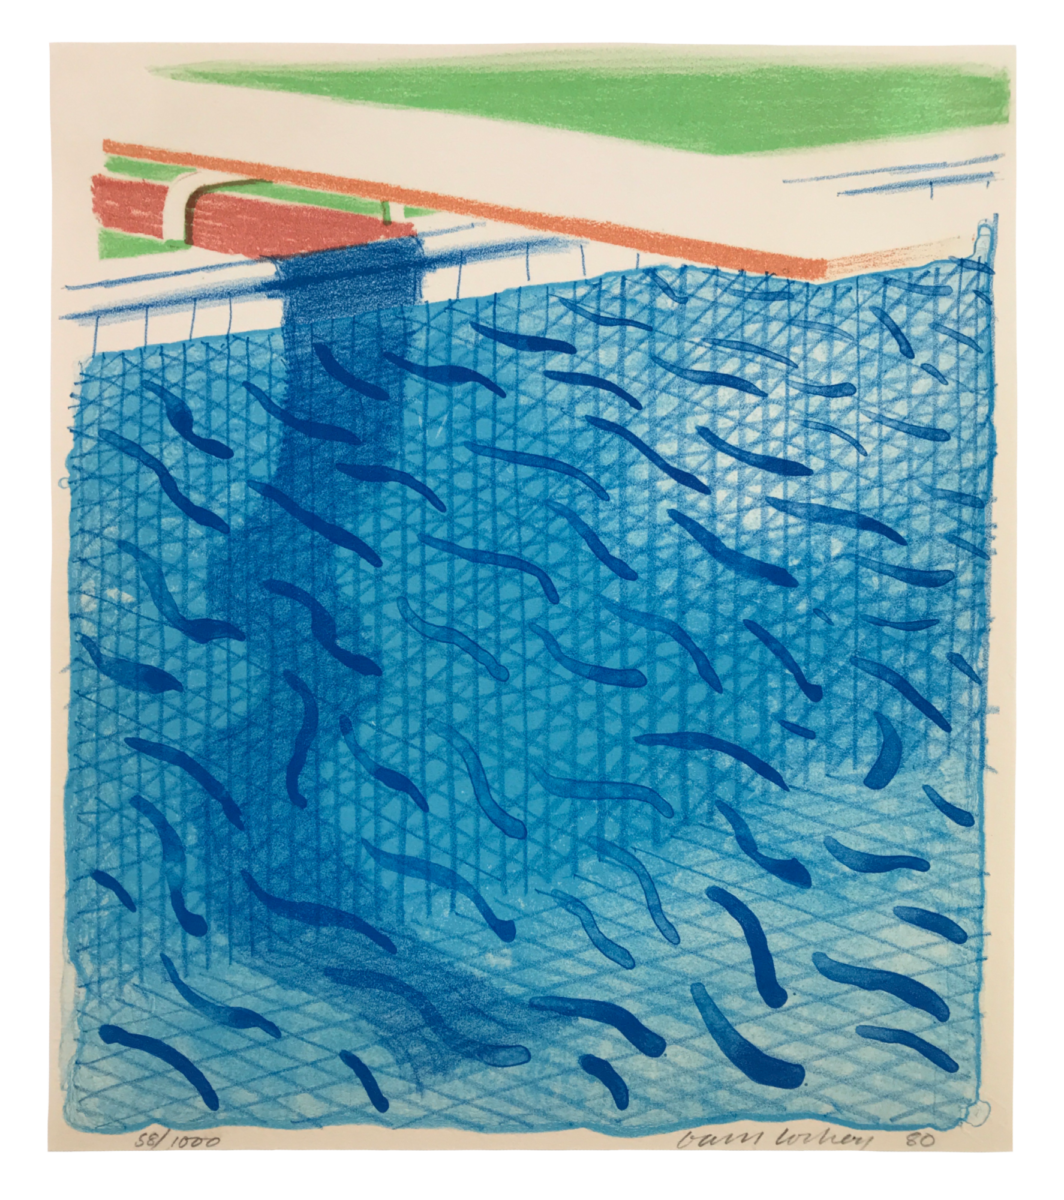 ADavid Hockney Pool Made With Paper and Blue Ink for Book original lithographic print for sale